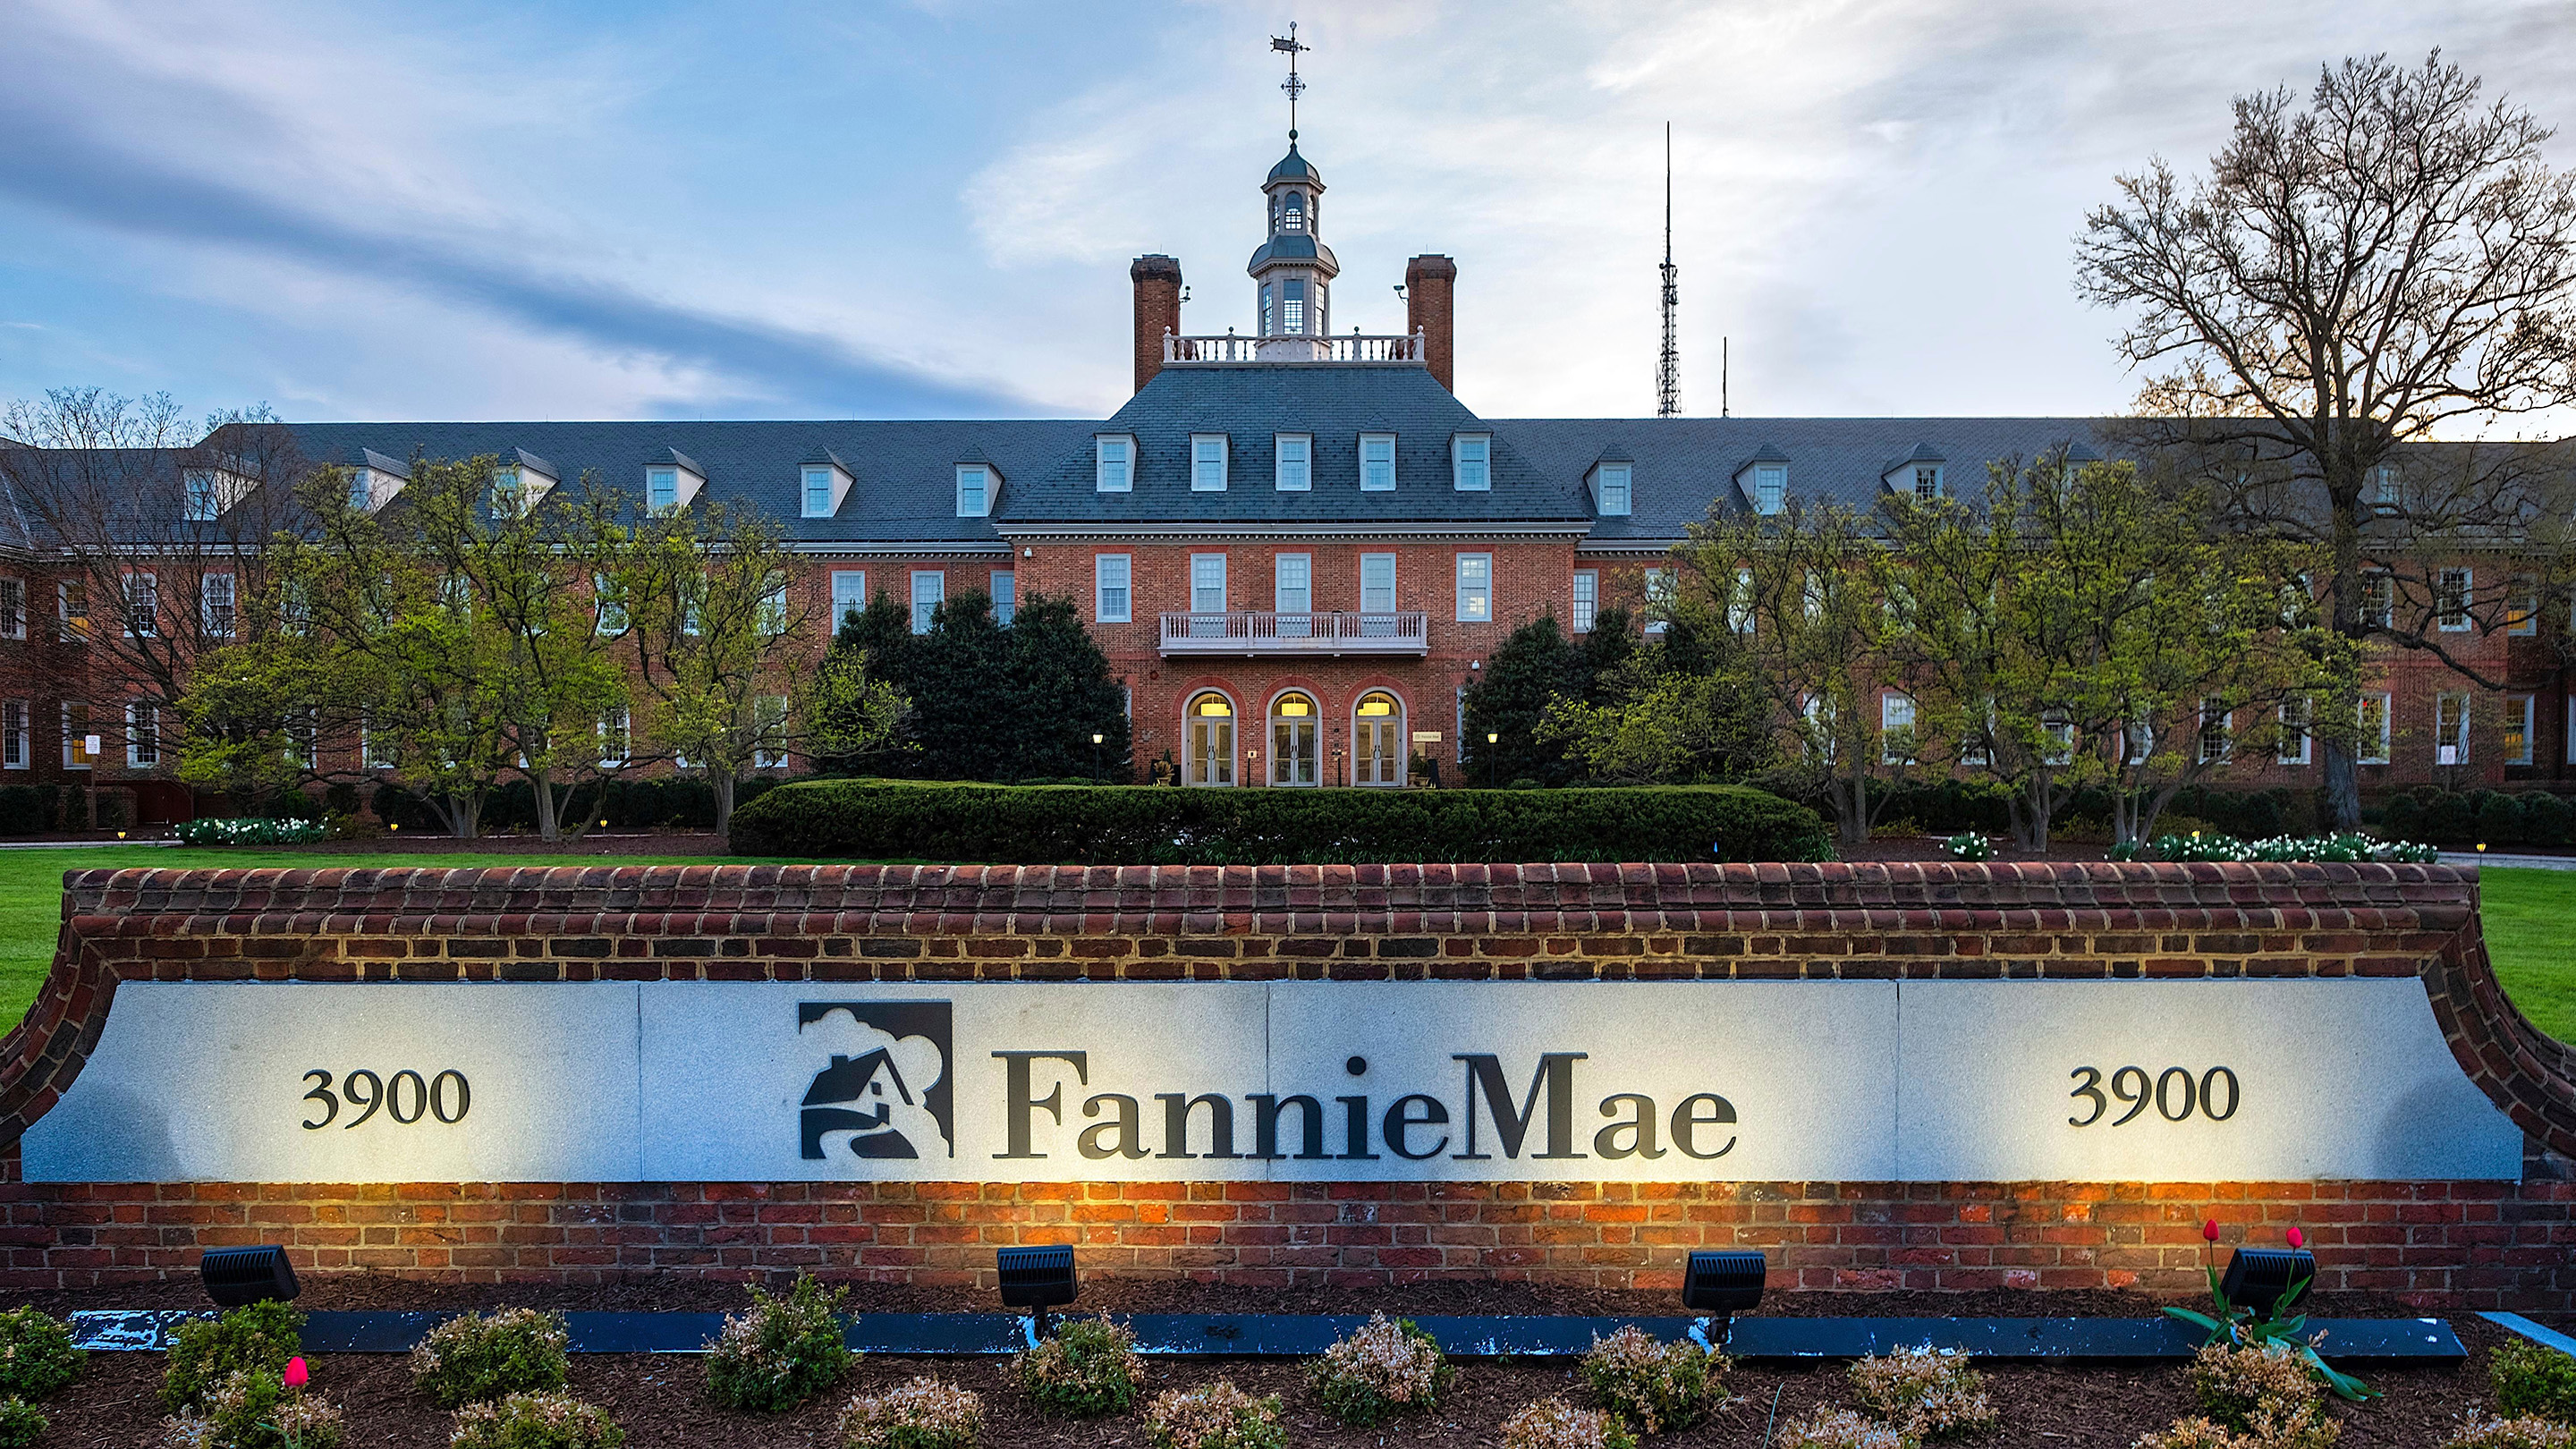 Fannie Mae Headquarters, Washington, USA - 21 Apr 2018